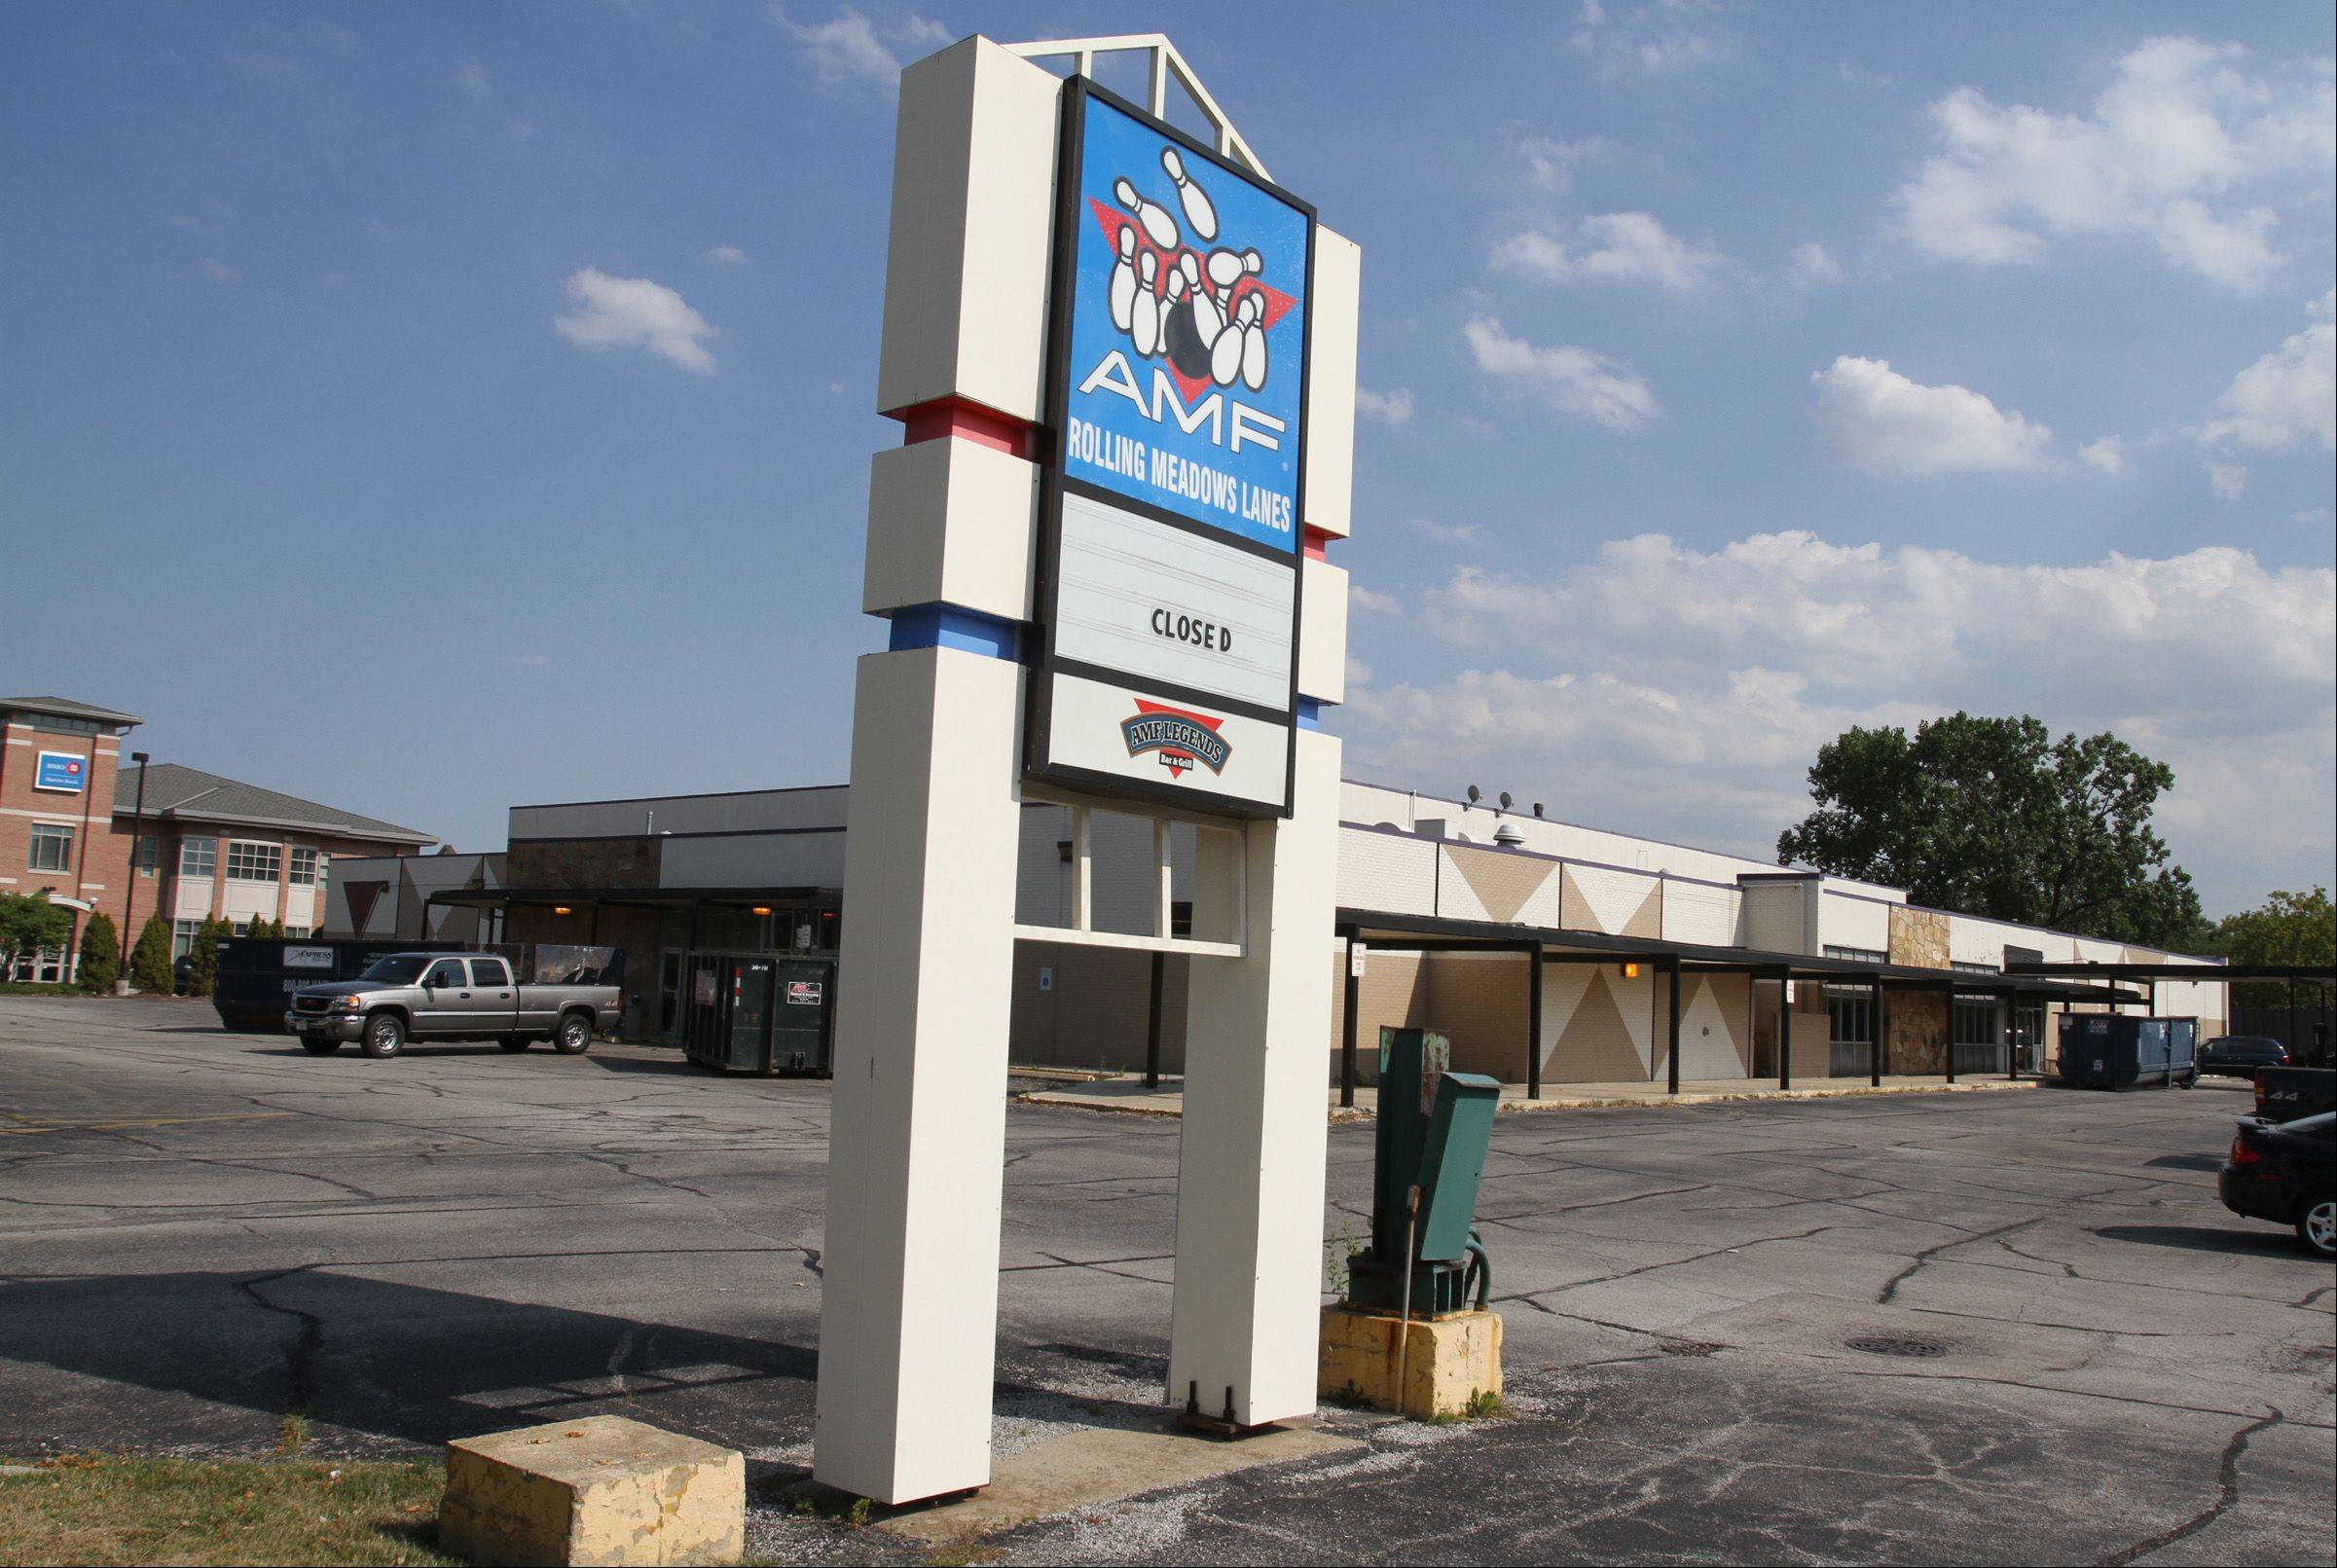 A Walmart Neighborhood Market grocery store is planned for the site of the AMF Rolling Meadows Lanes bowling alley, which closed in July 2012.